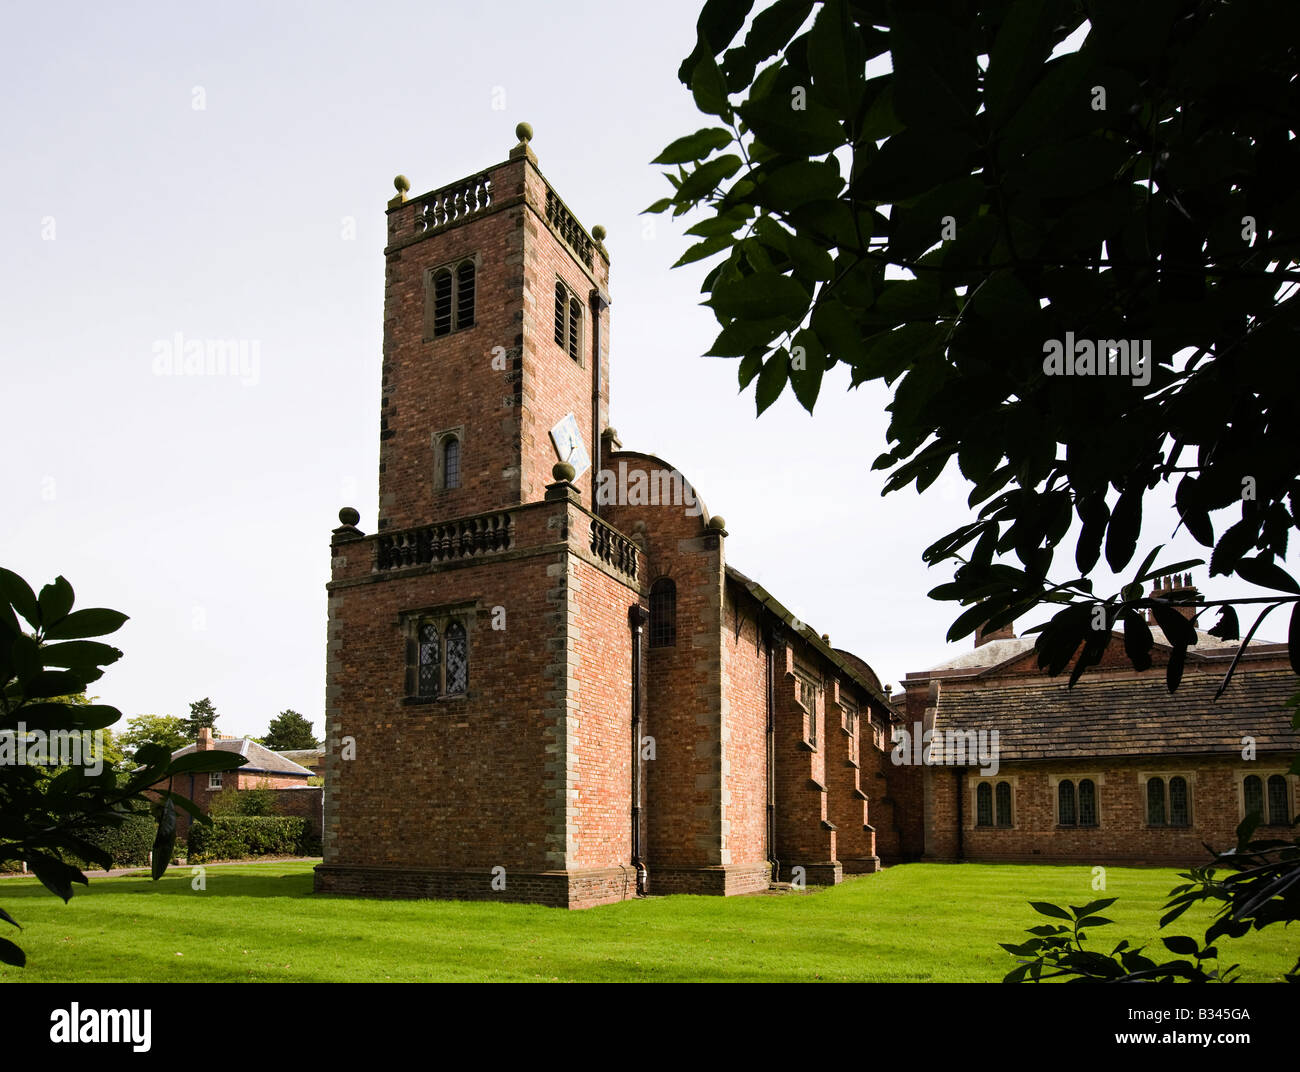 UK Cheshire Knutsford Tabley House St Peters Chapel 1675 - Stock Image